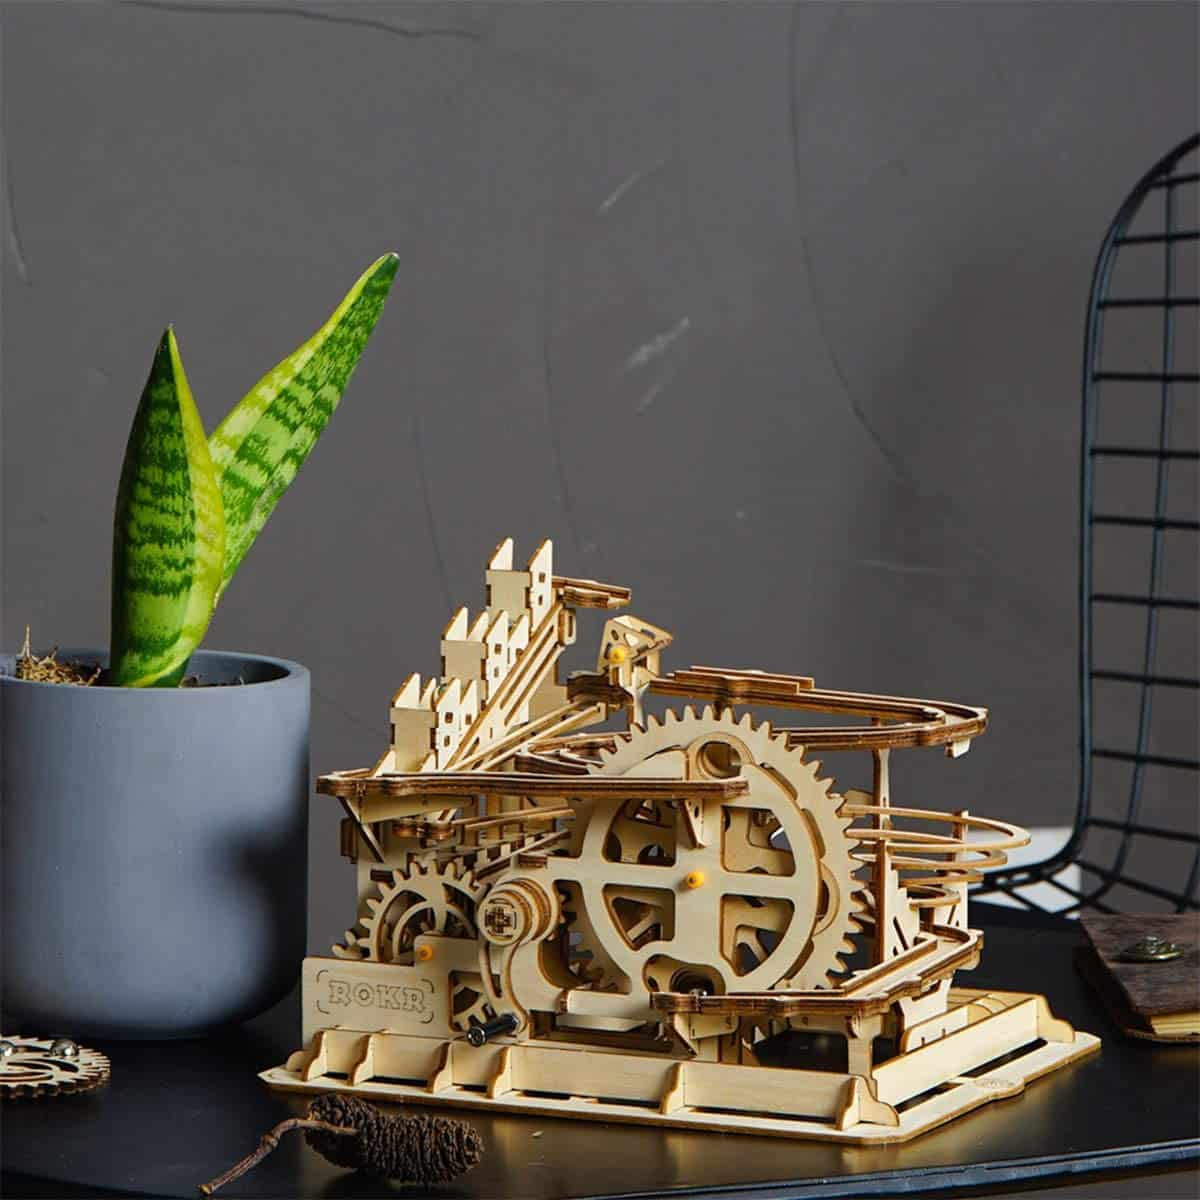 ROKR Marble Run 3D Wooden Puzzle Roller Coaster Mechanical Model Self Craft Deco Education Gift - best steampunk gifts